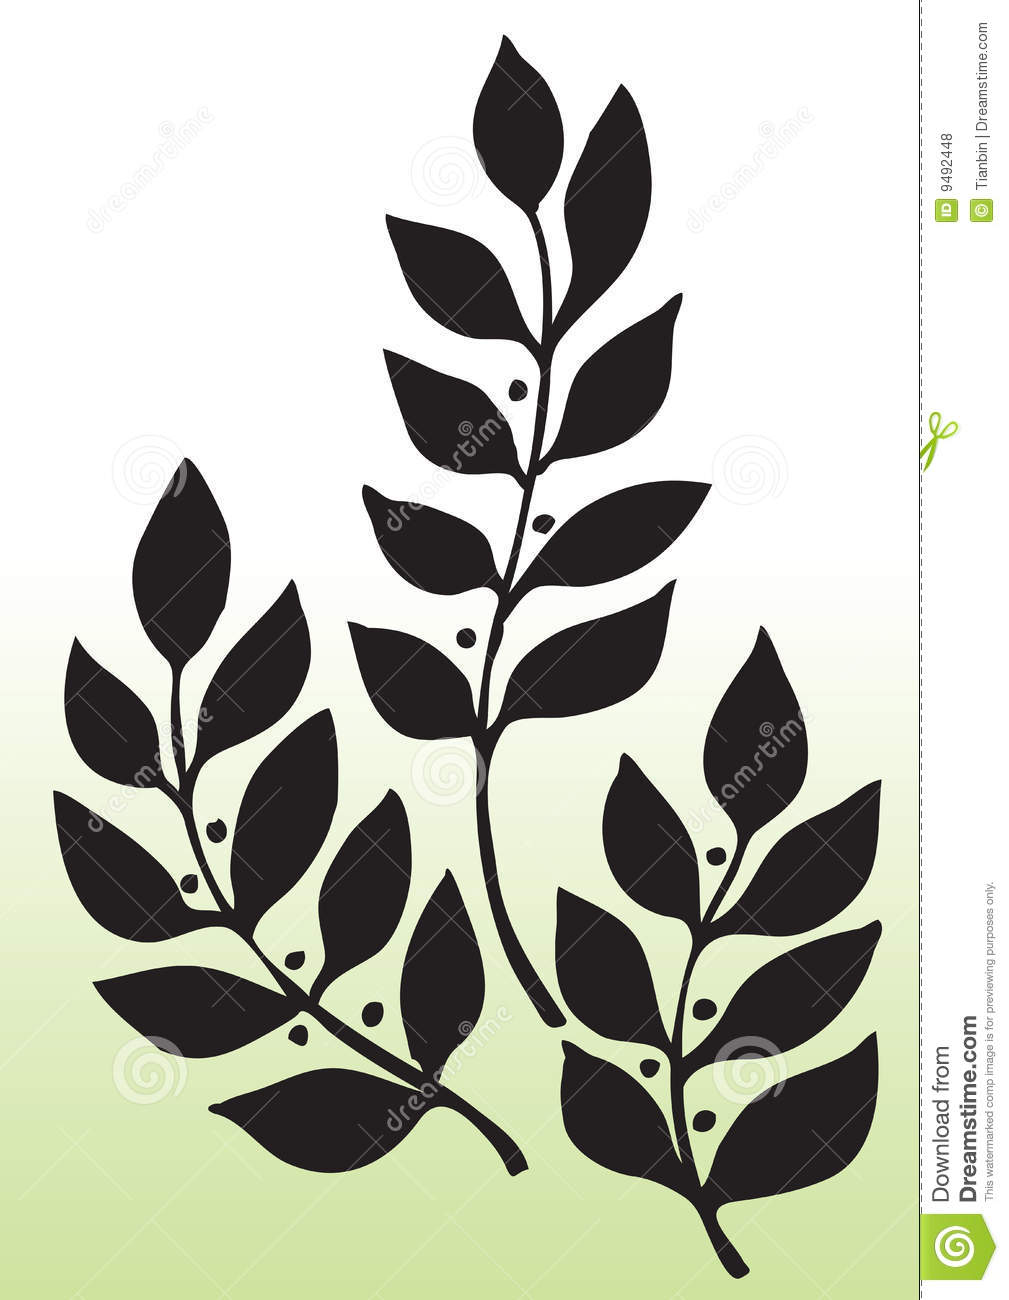 Leaves Silhouette Royalty Free Stock Photos Image 9492448